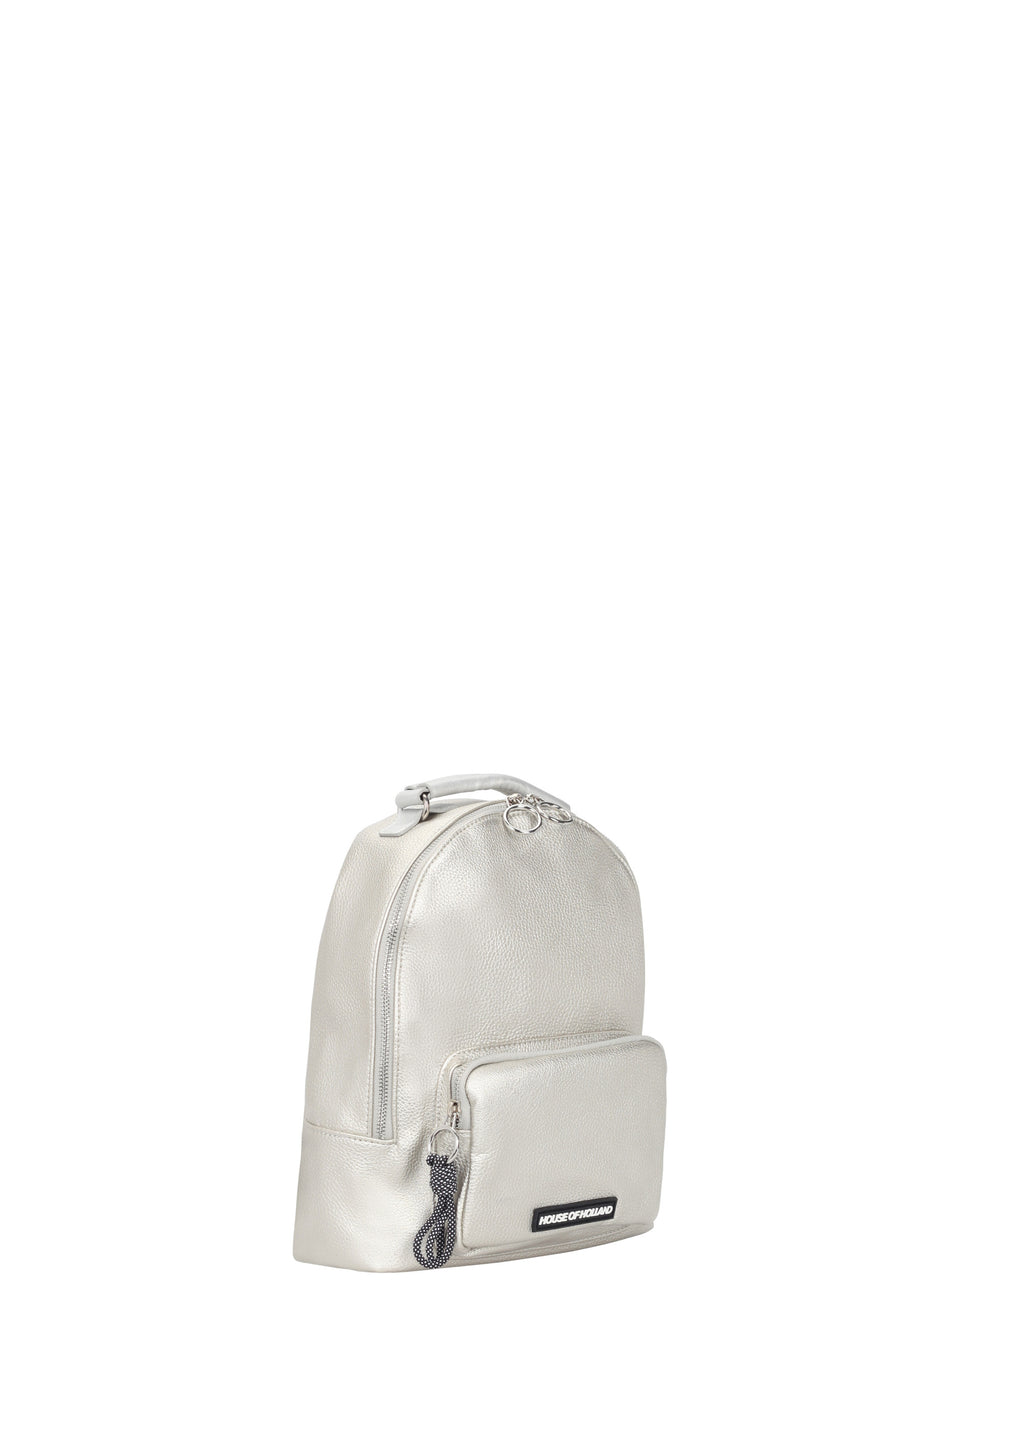 Silver Metallic Backpack